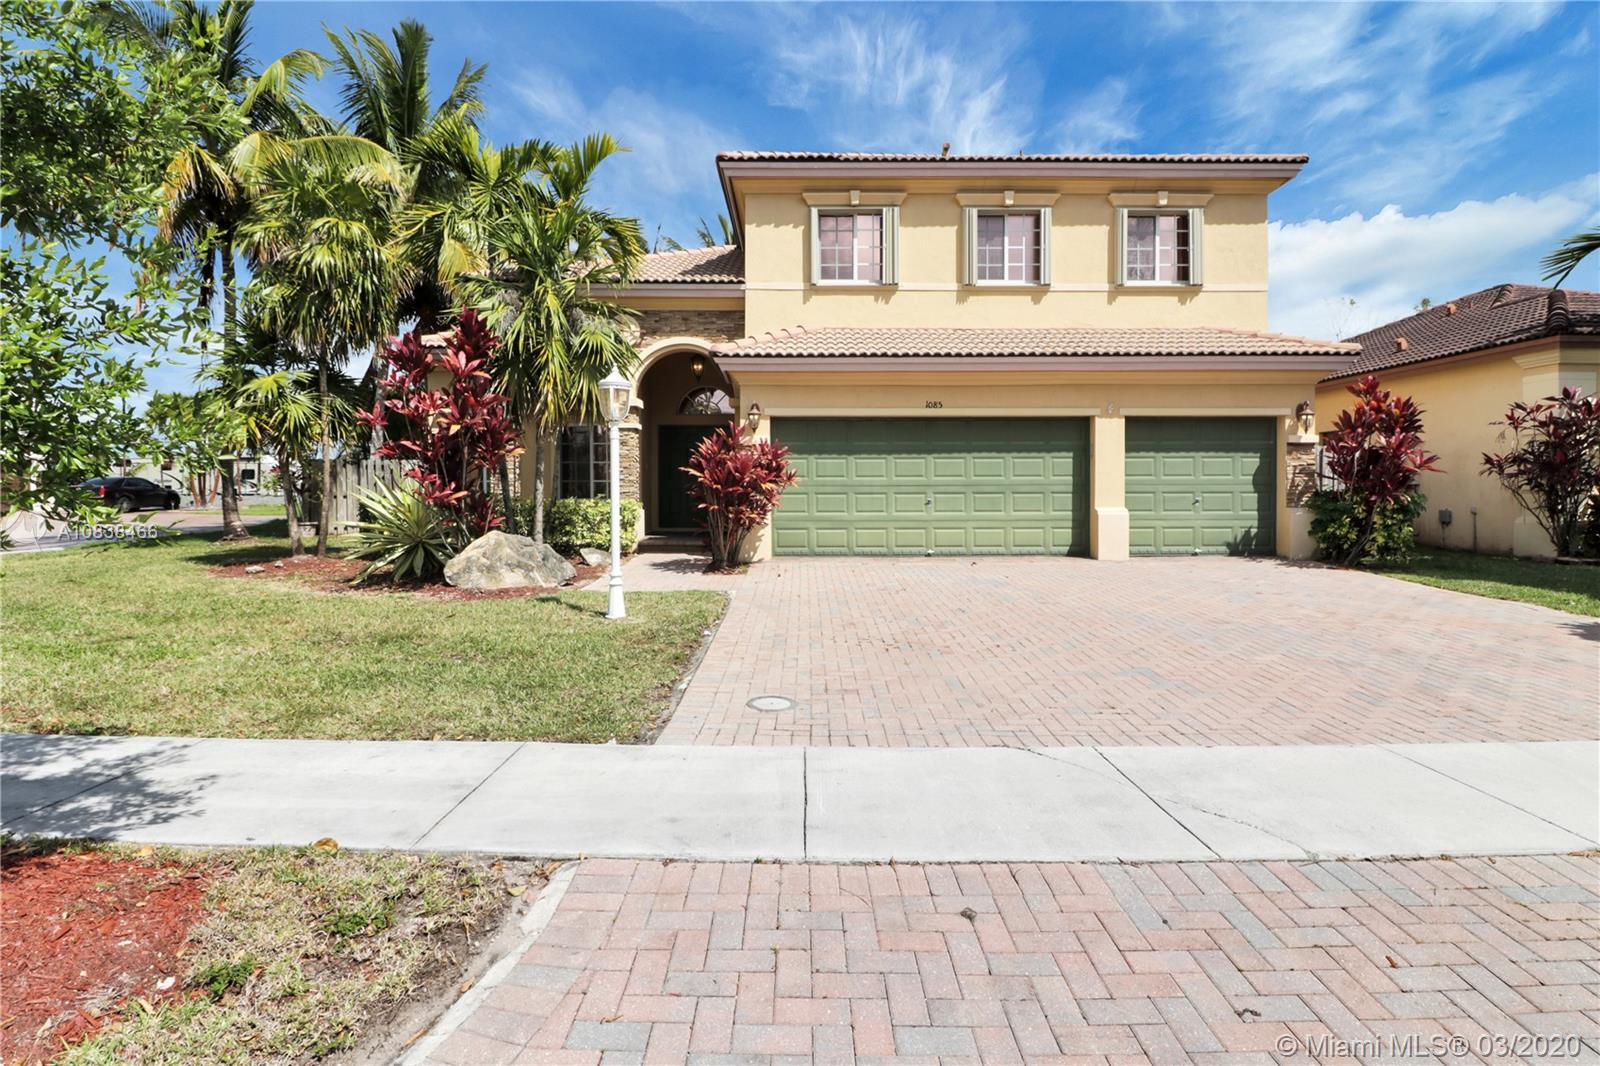 1085 NE 36th Ave, Homestead, FL 33033 - Homestead, FL real estate listing